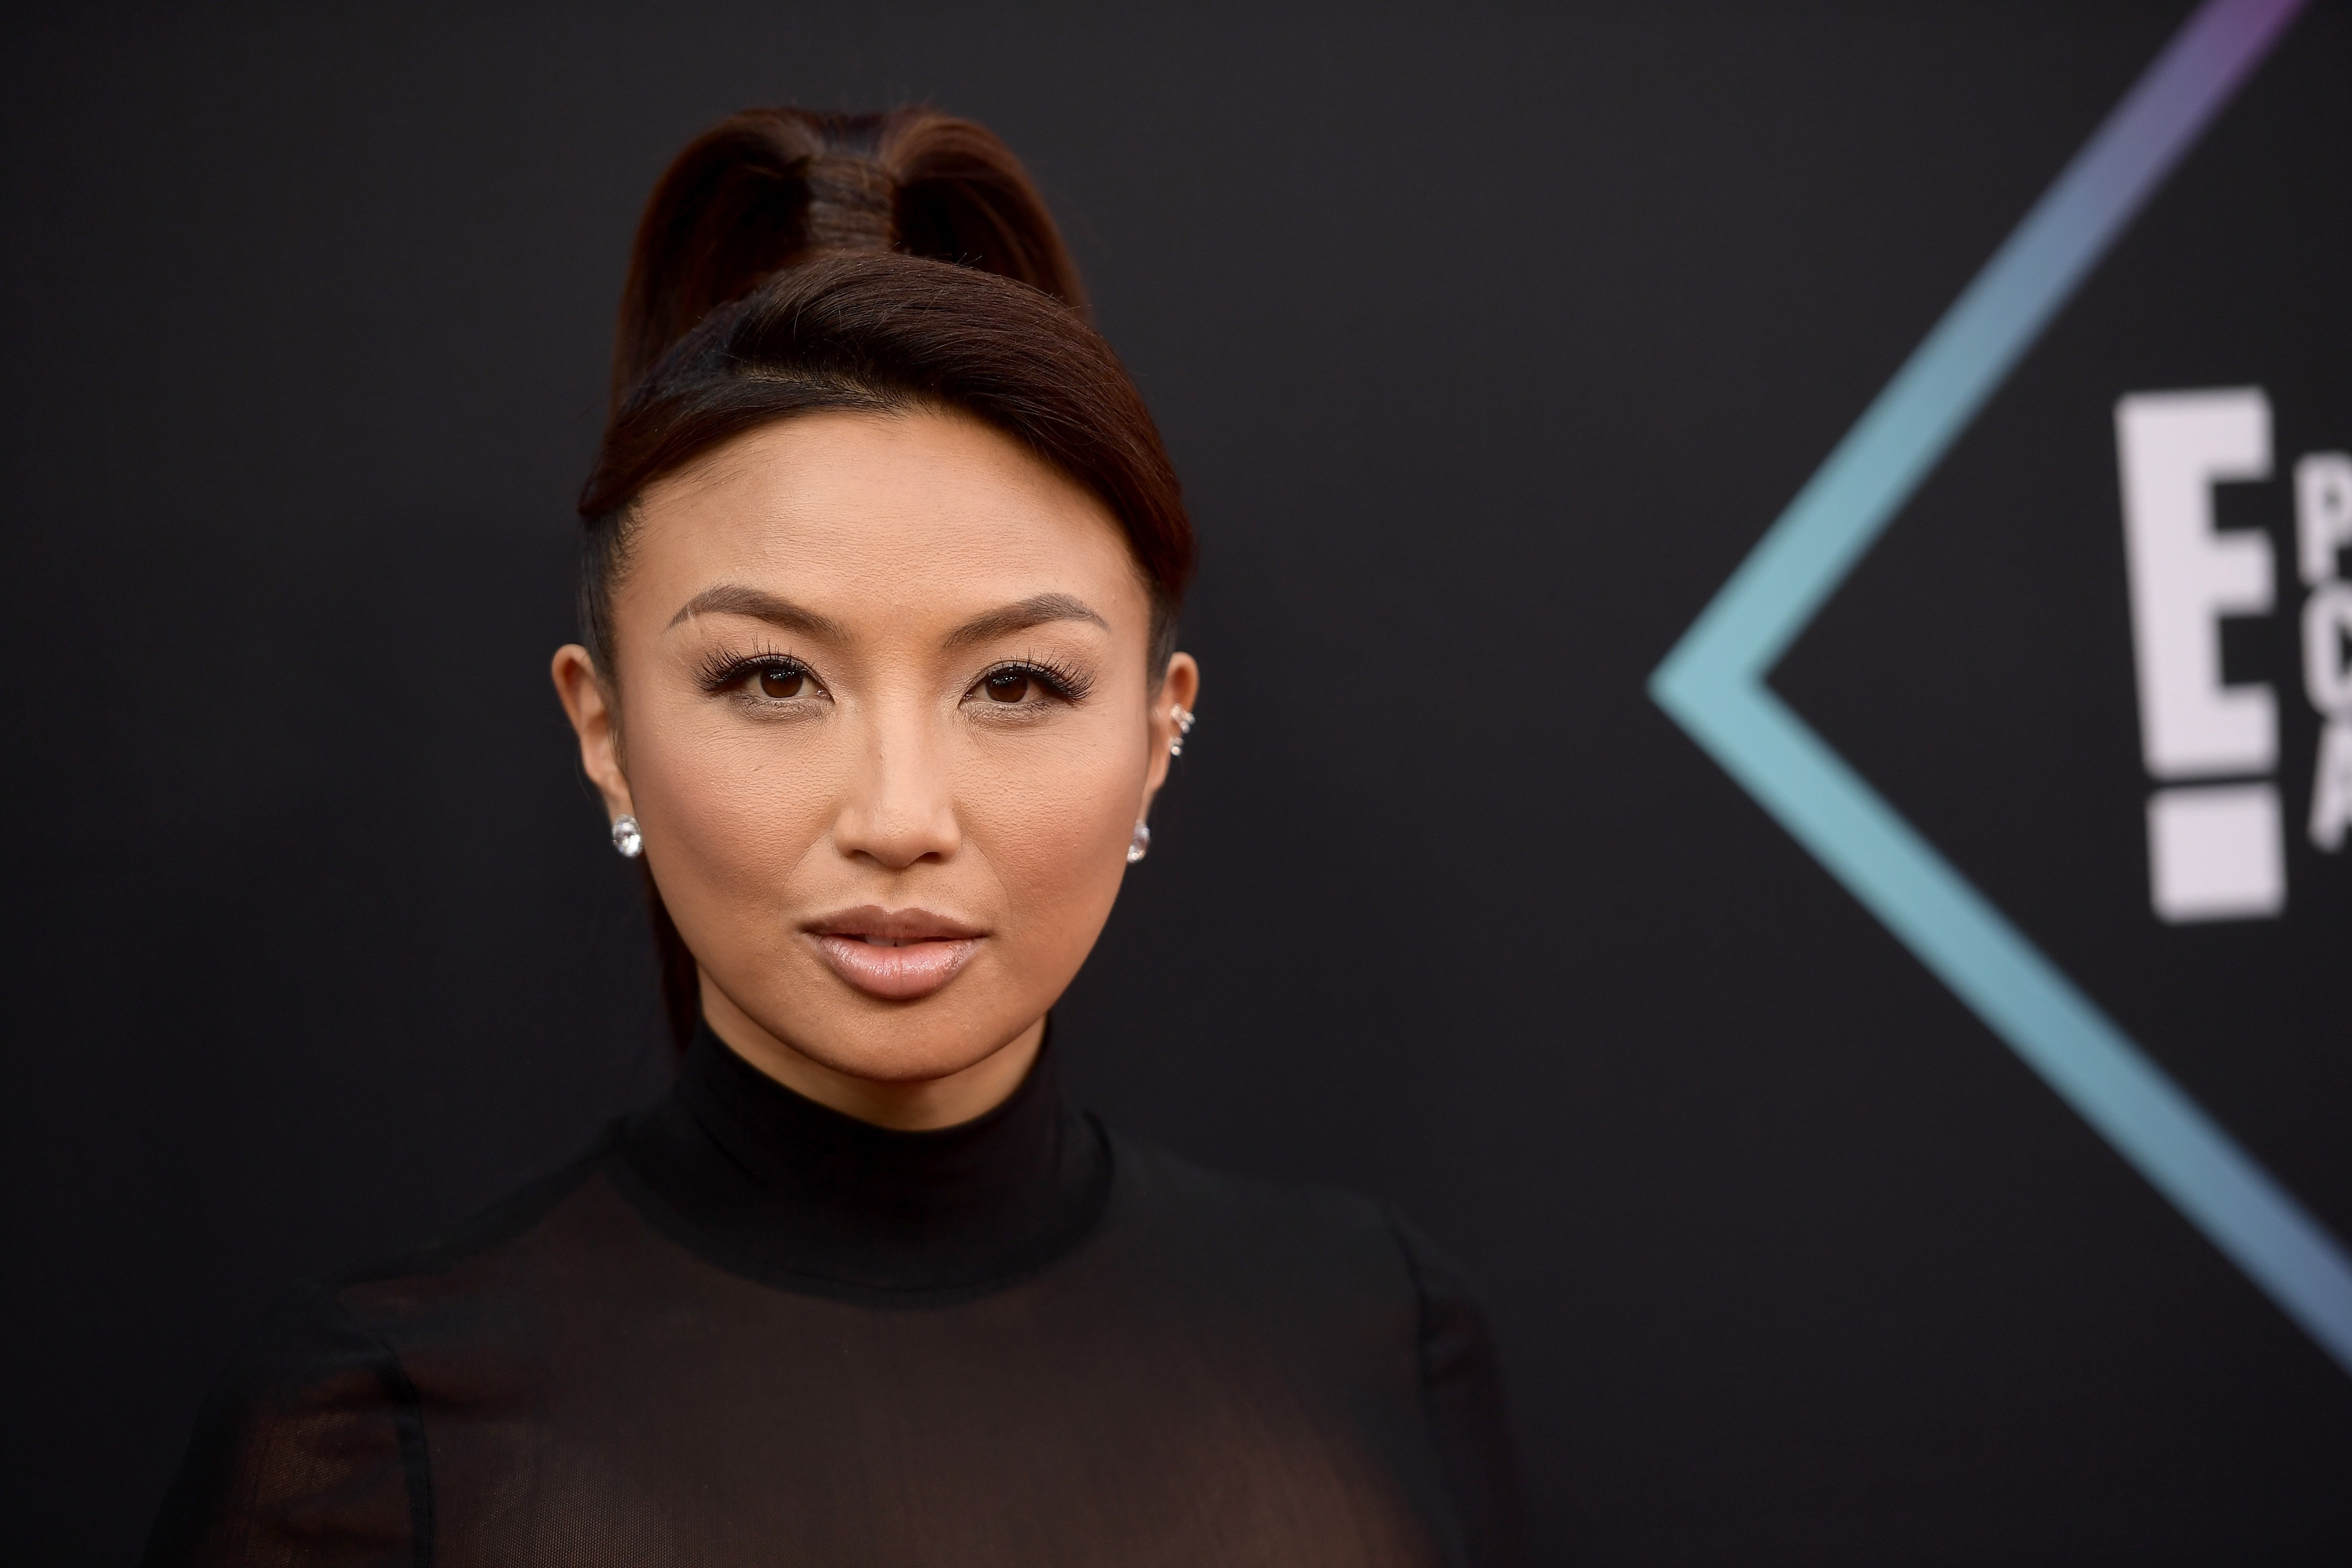 Jeannie Mai attends the People's Choice Awards 2018 at Barker Hangar on November 11, 2018 | Photo: GettyImages